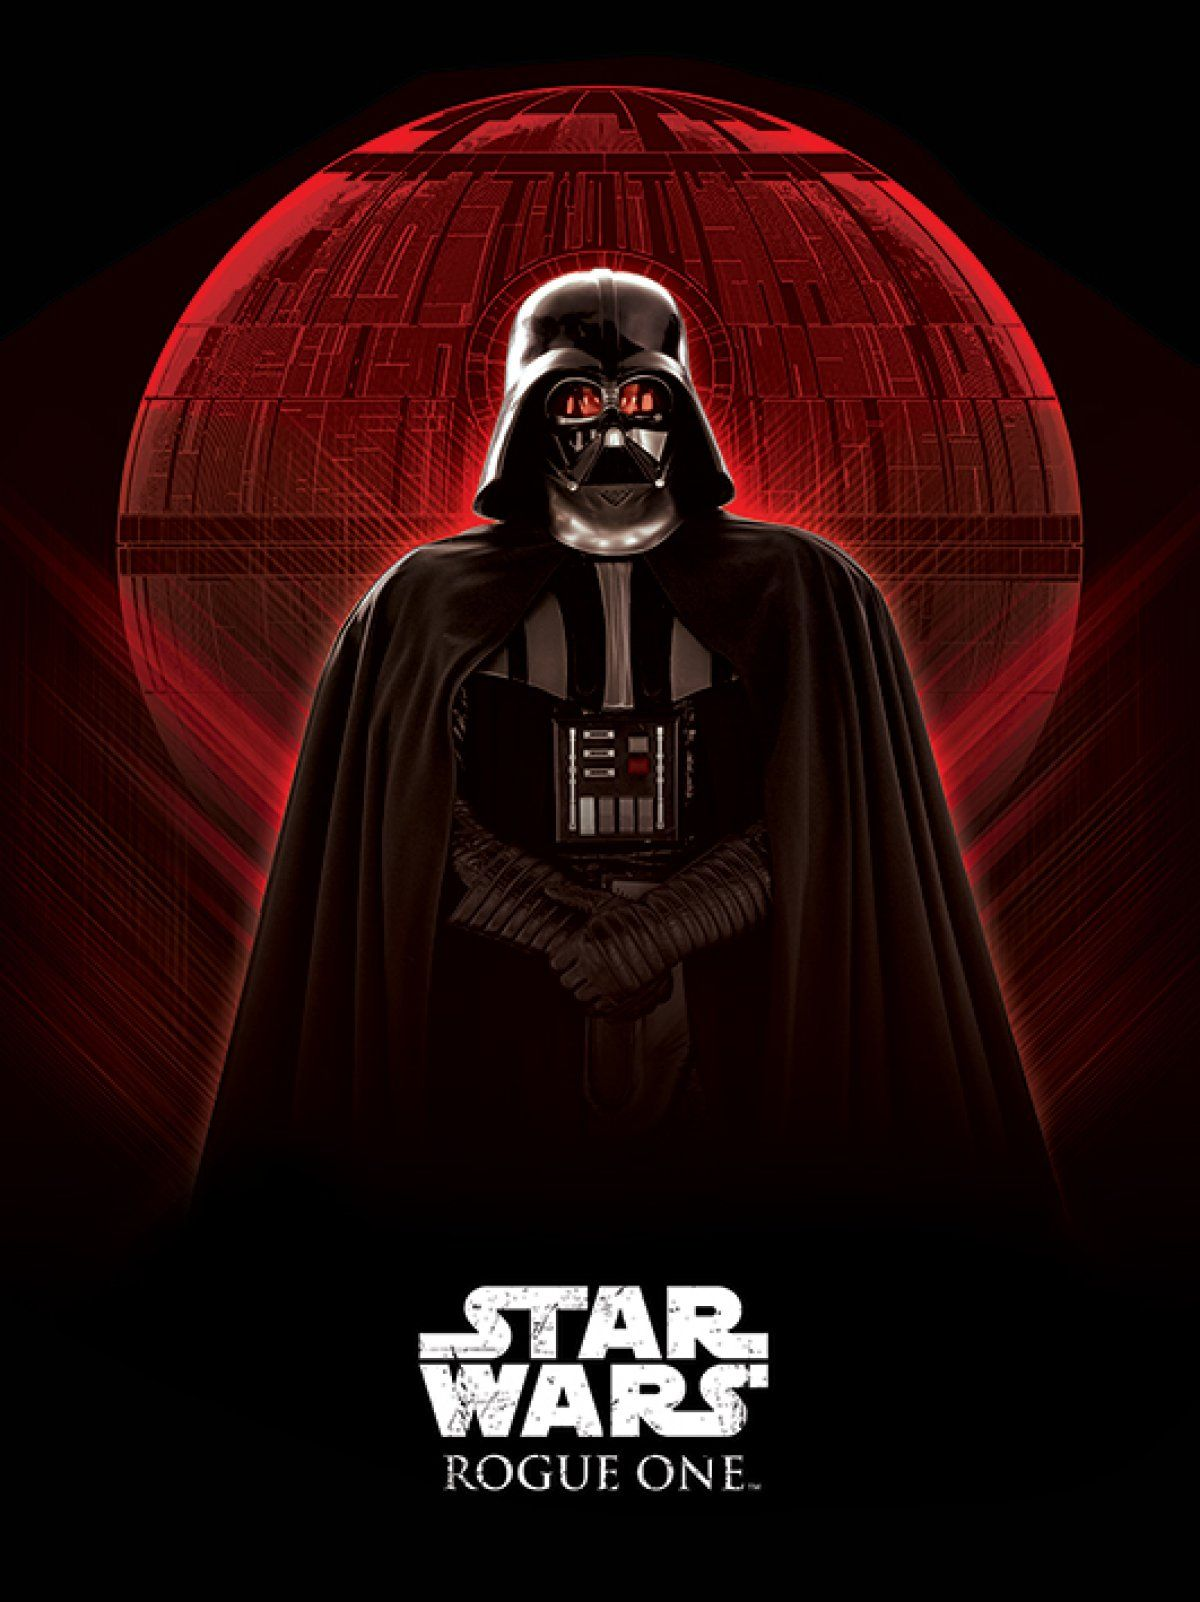 New Rogue One Official Posters Hd A Star Wars Story Darth Vader Hd Hi Res Rogue One Star Wars Star Wars Poster Vader Star Wars